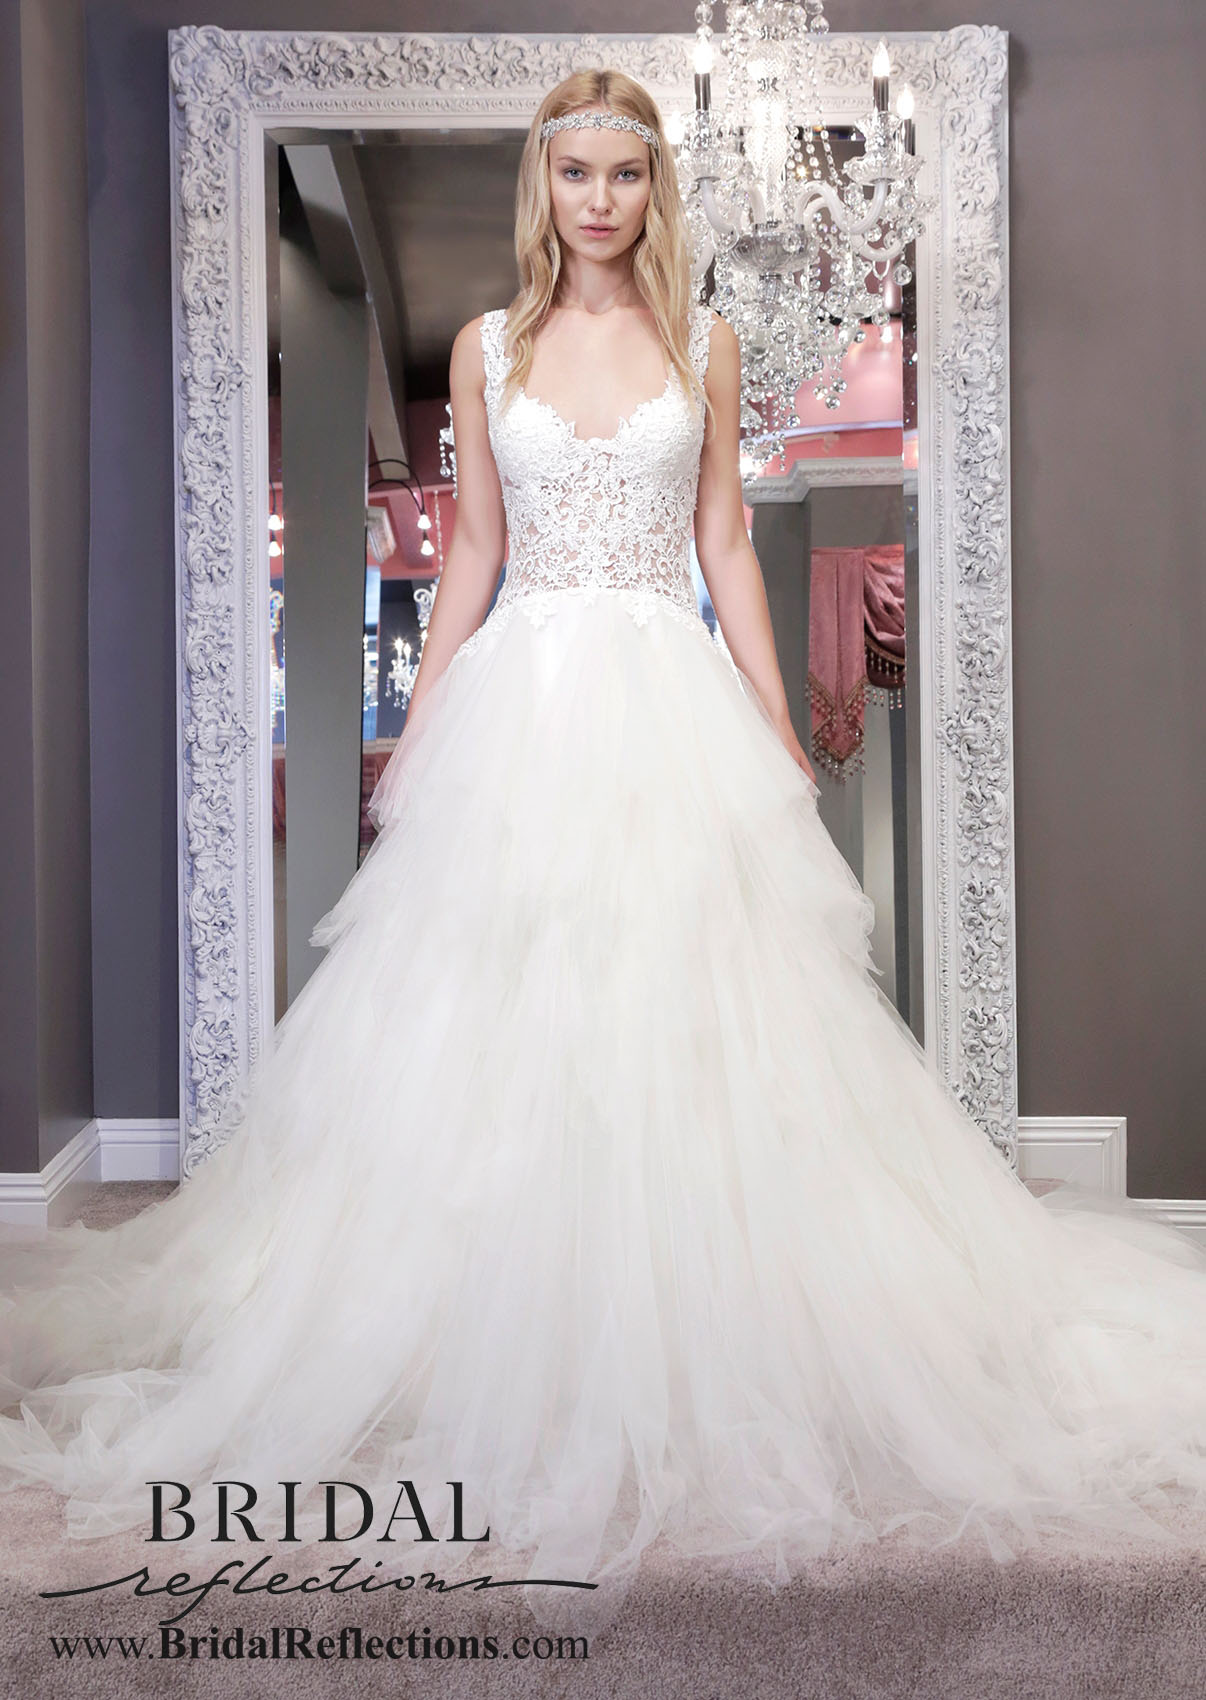 Winnie couture bridal gown and wedding dress collection for Winnie couture wedding dresses